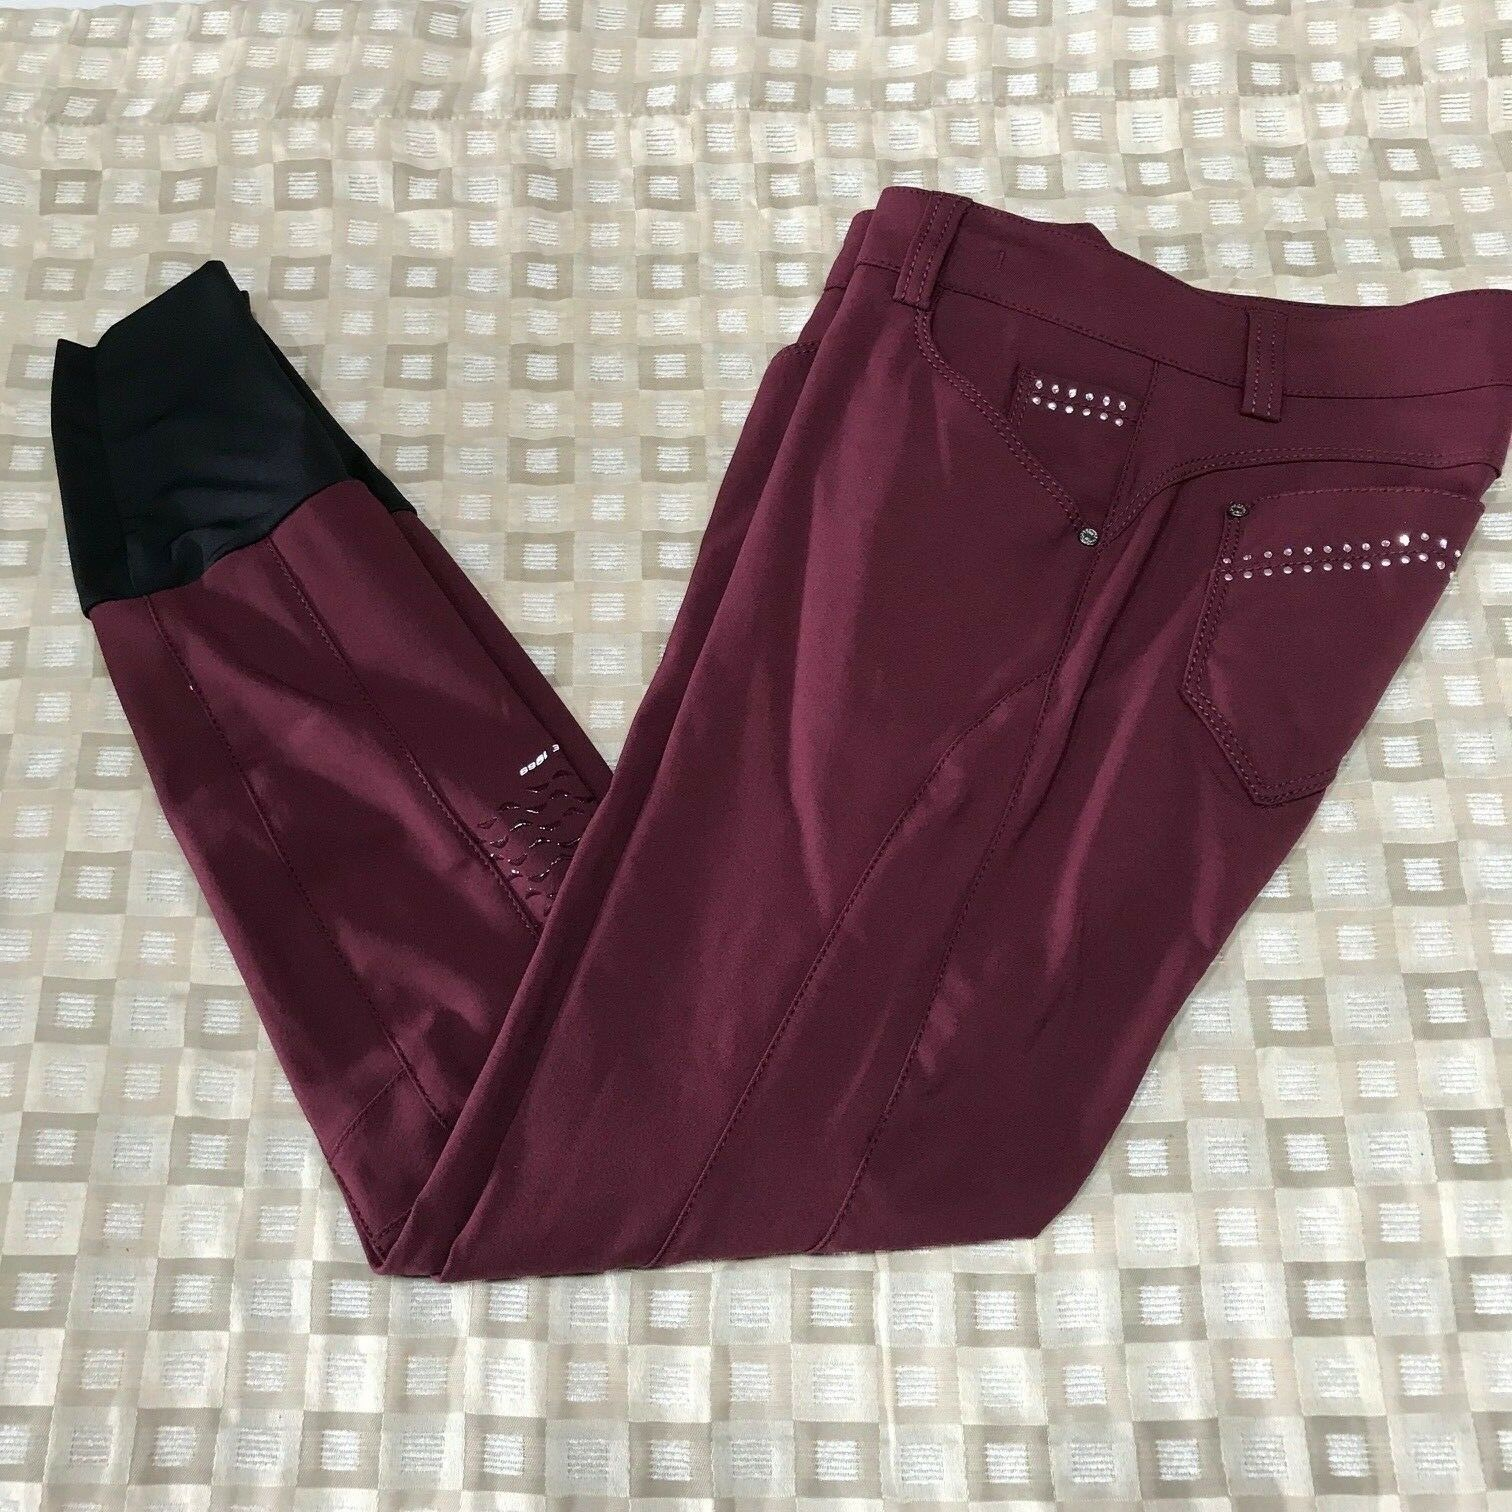 Animo Nabso Full Grip Breeches in Burgandy